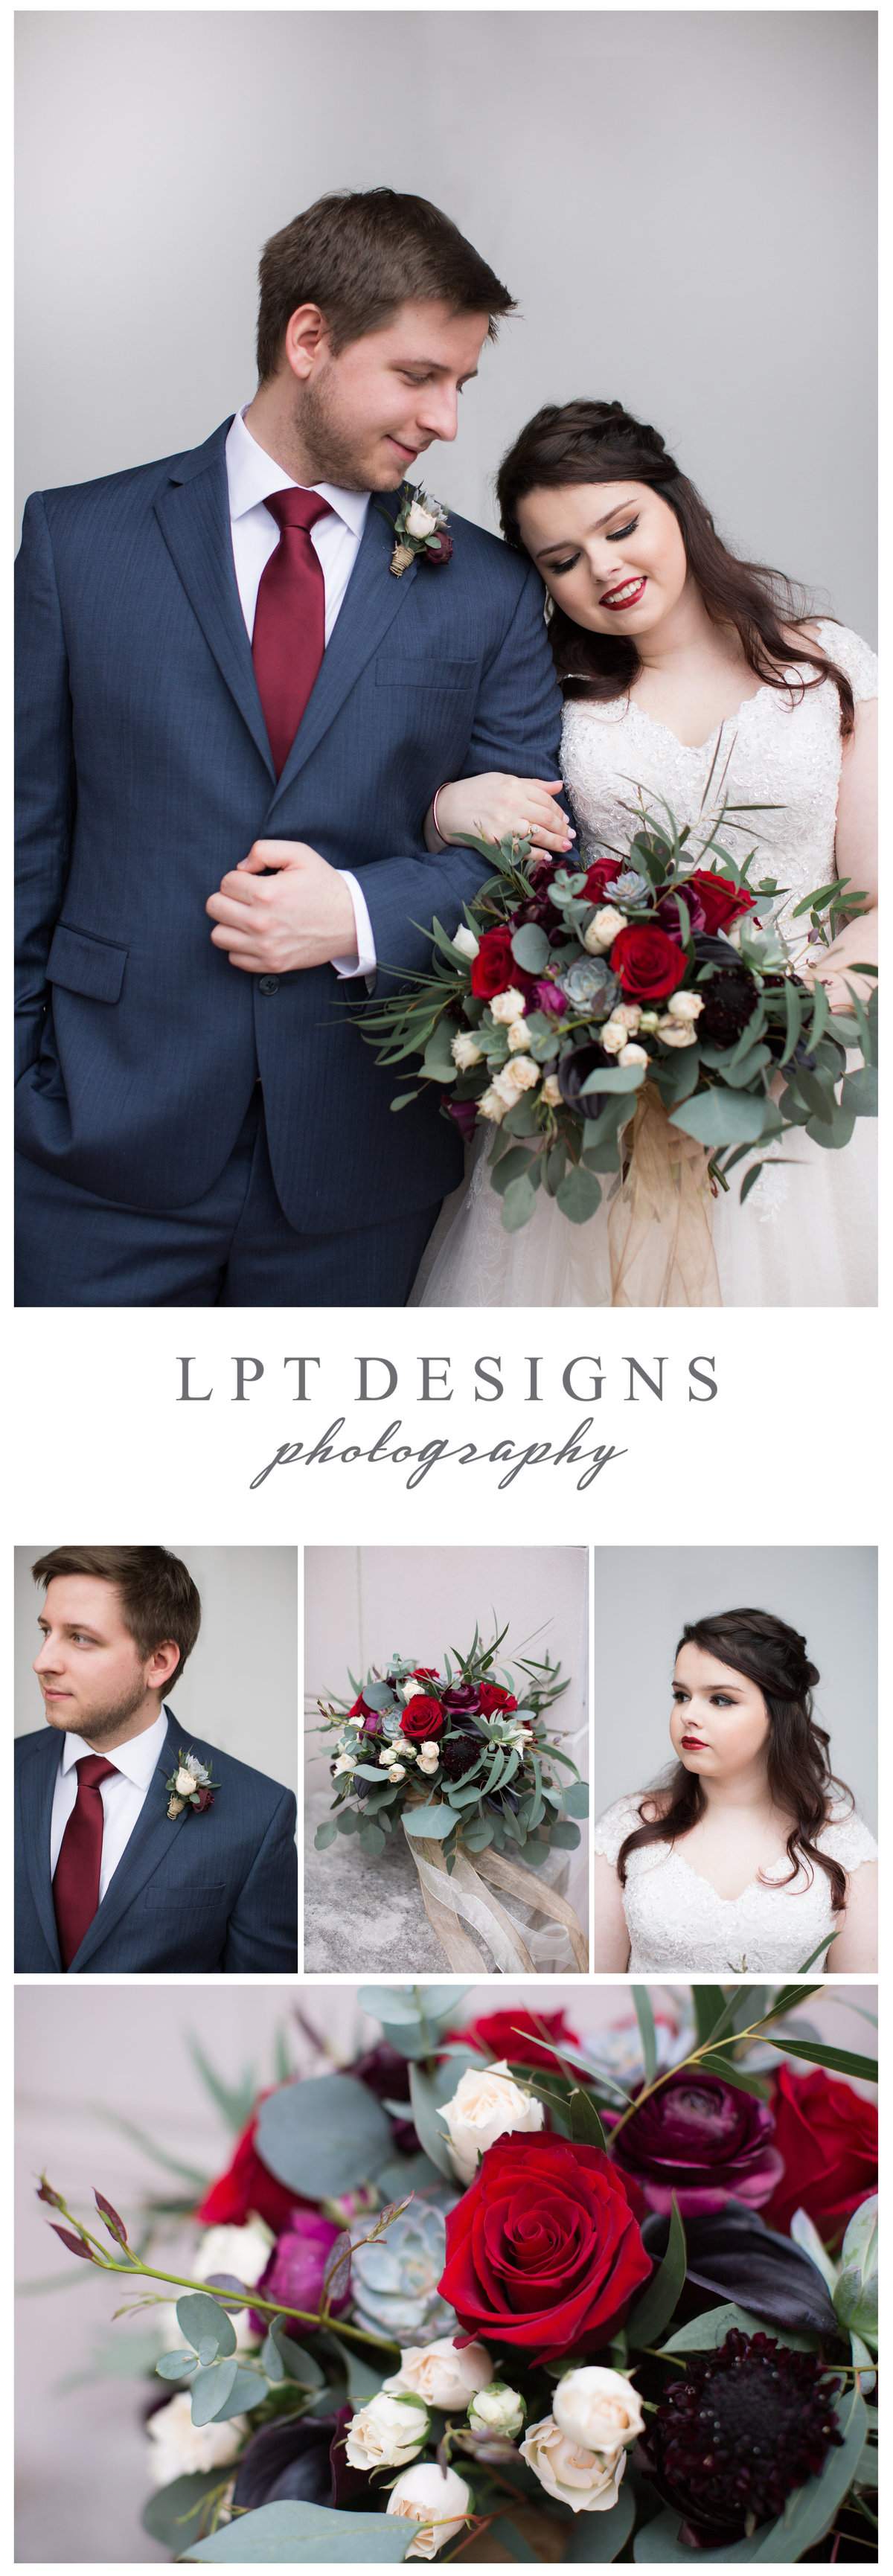 LPT Designs Photography Lydia Thrift Gadsden Alabama Fine Art Wedding Photographer KT 1